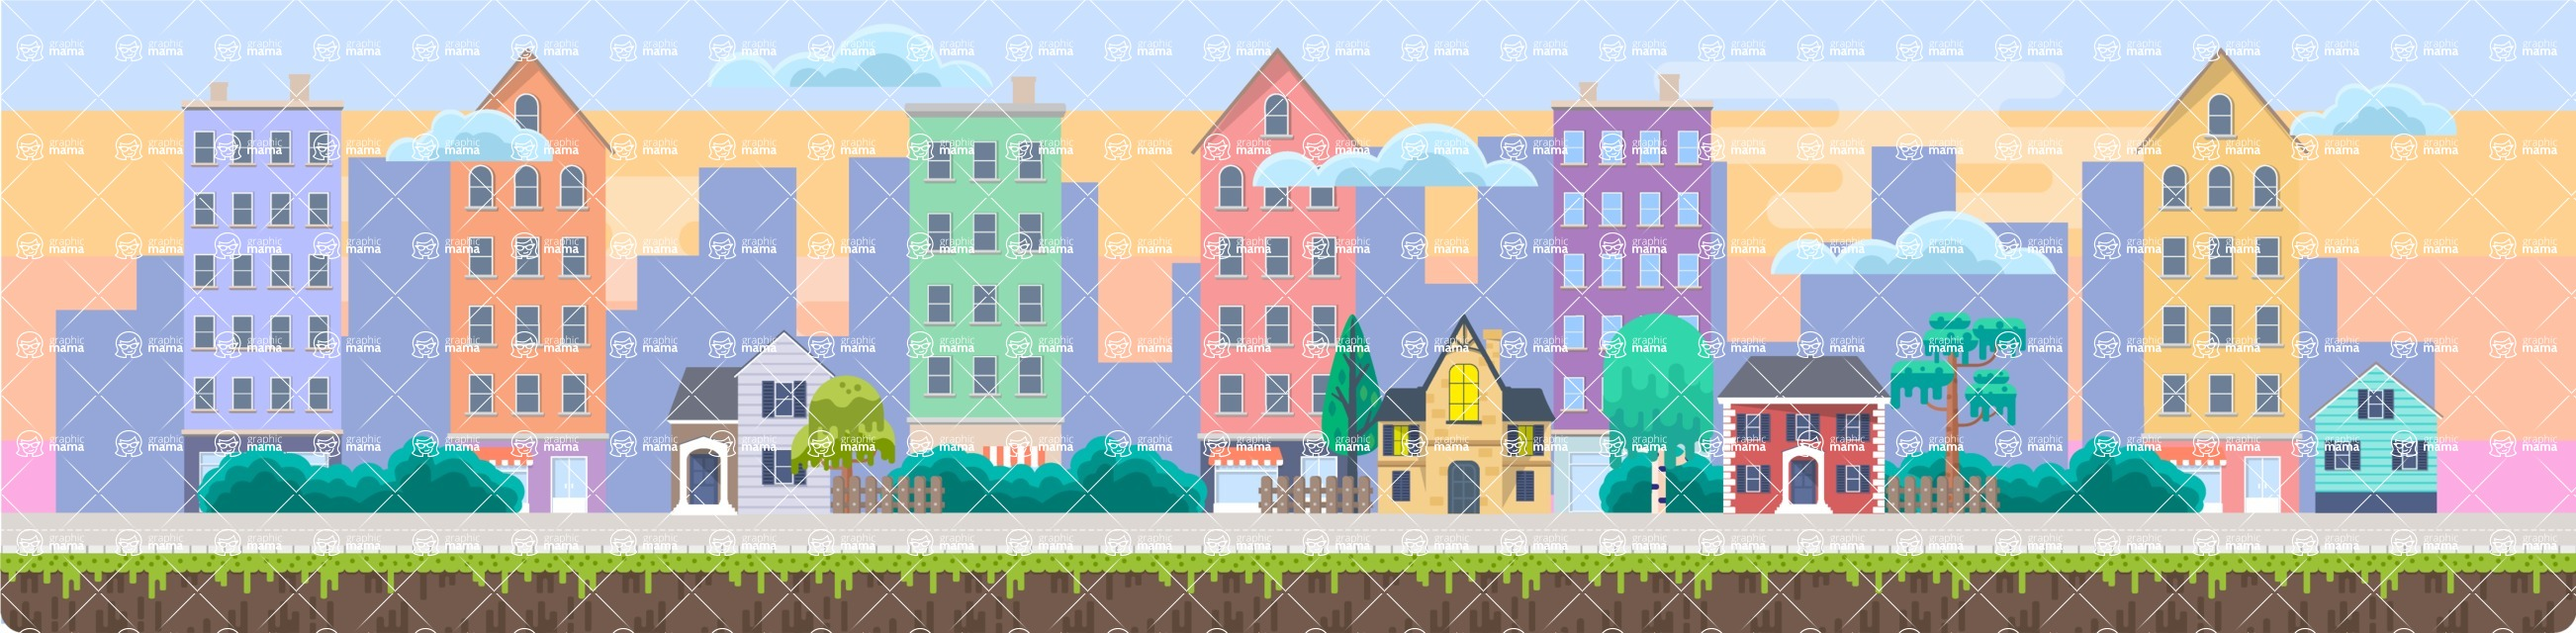 Background Vector Creation pack. A rich collection of flat vector elements for nature landscapes, city skylines, futuristic towns, fantastic scenes.  - Backgrounds 50